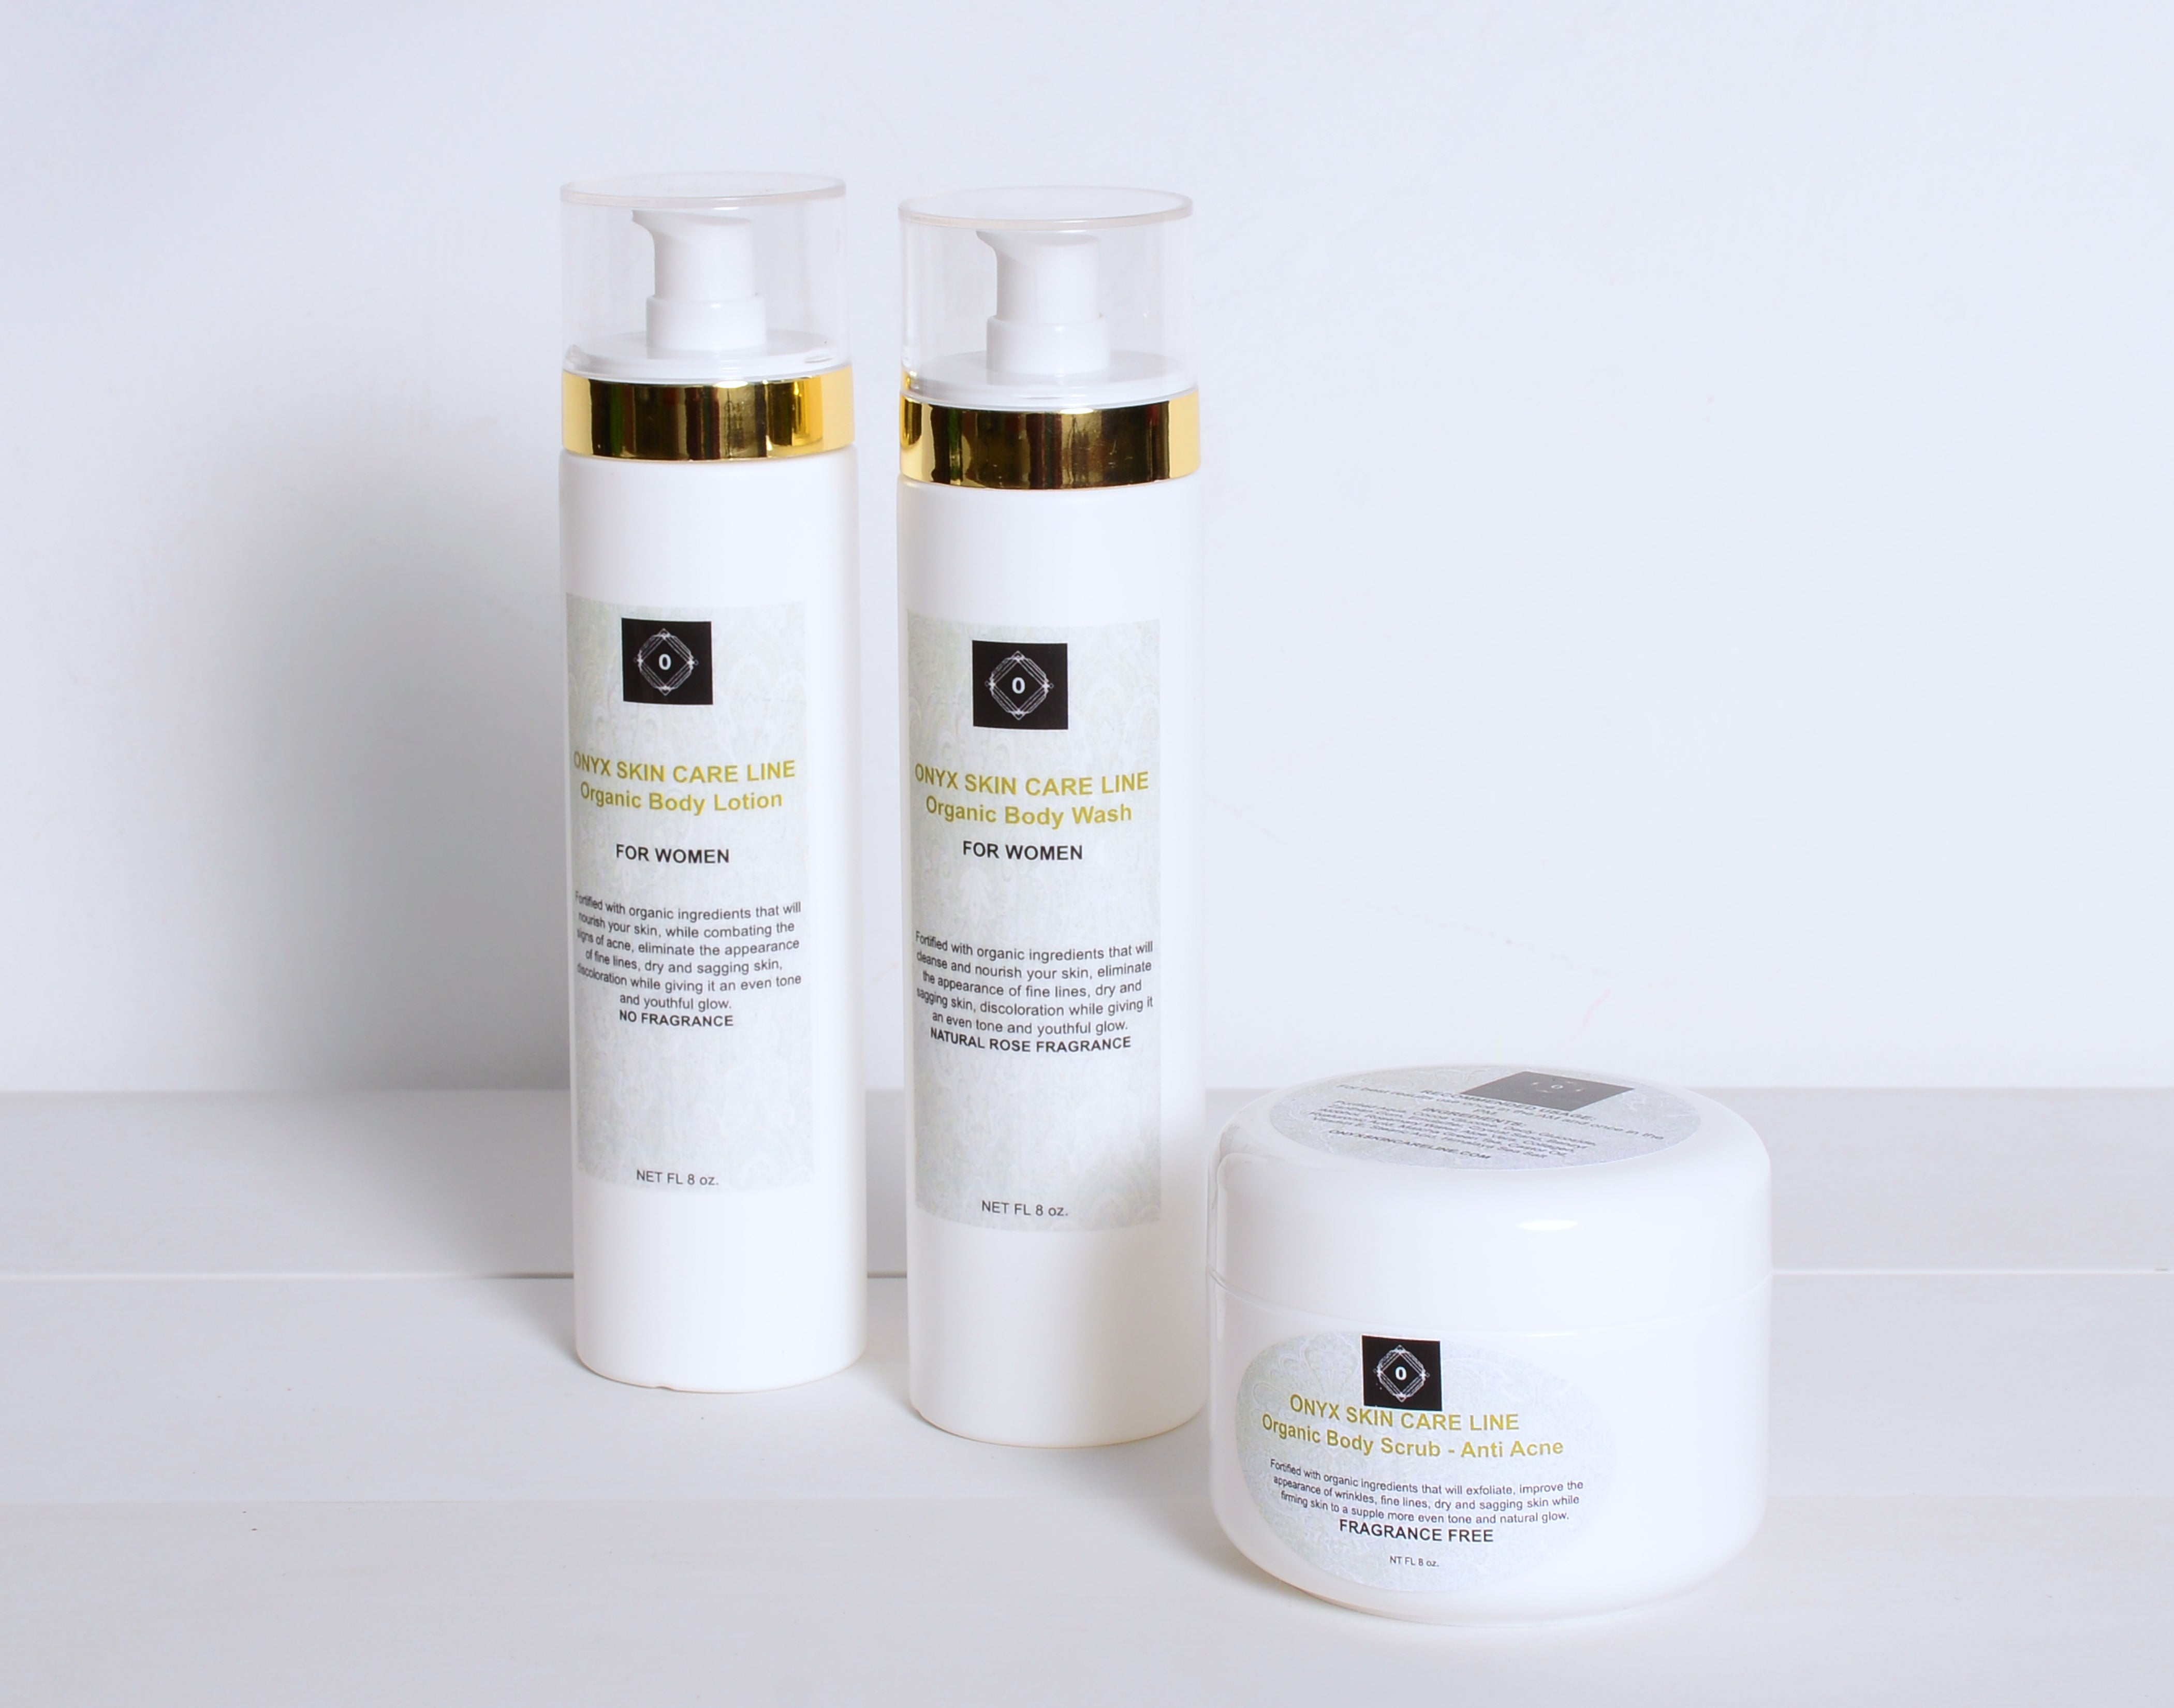 THREE STEP SKIN CARE SYSTEM - Nourishing Wash, Scrub and Lotion - Natural Calming Lavender Fragrance - for WOMEN